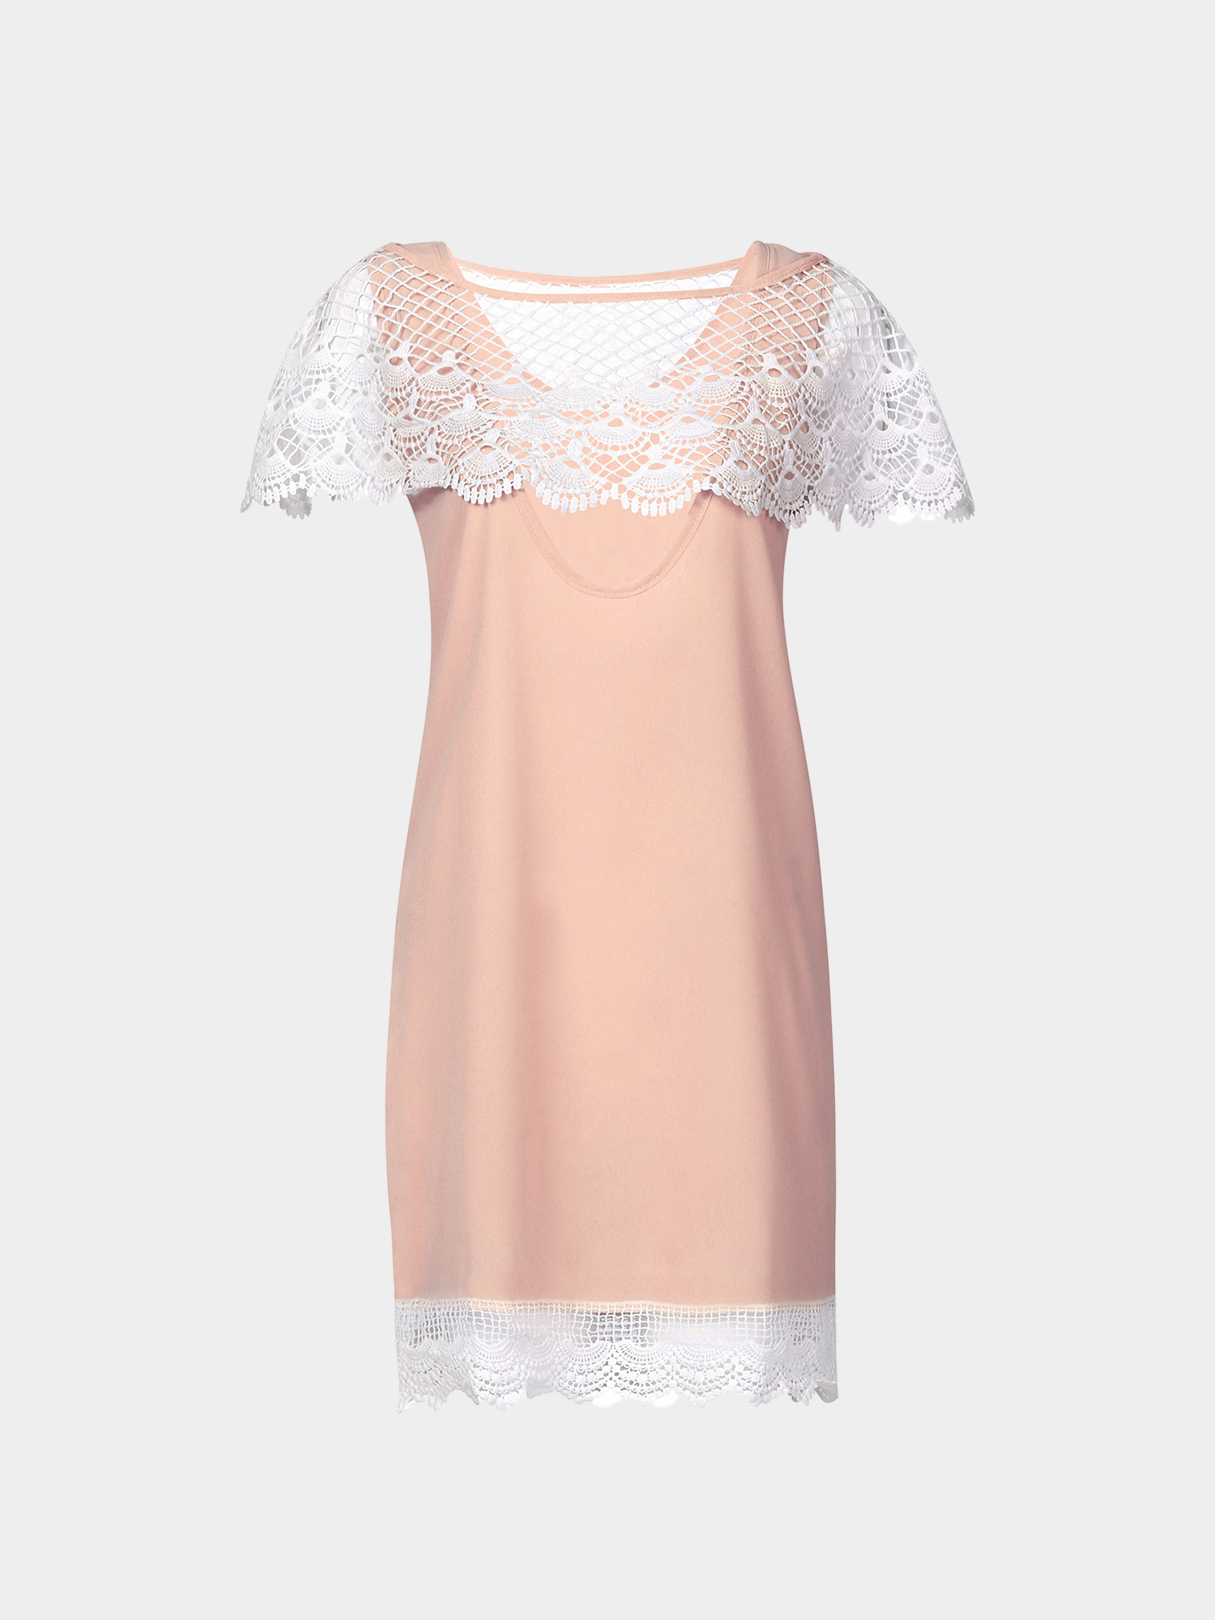 Pink See Through Sleeveless A-line Lace Mini Dress